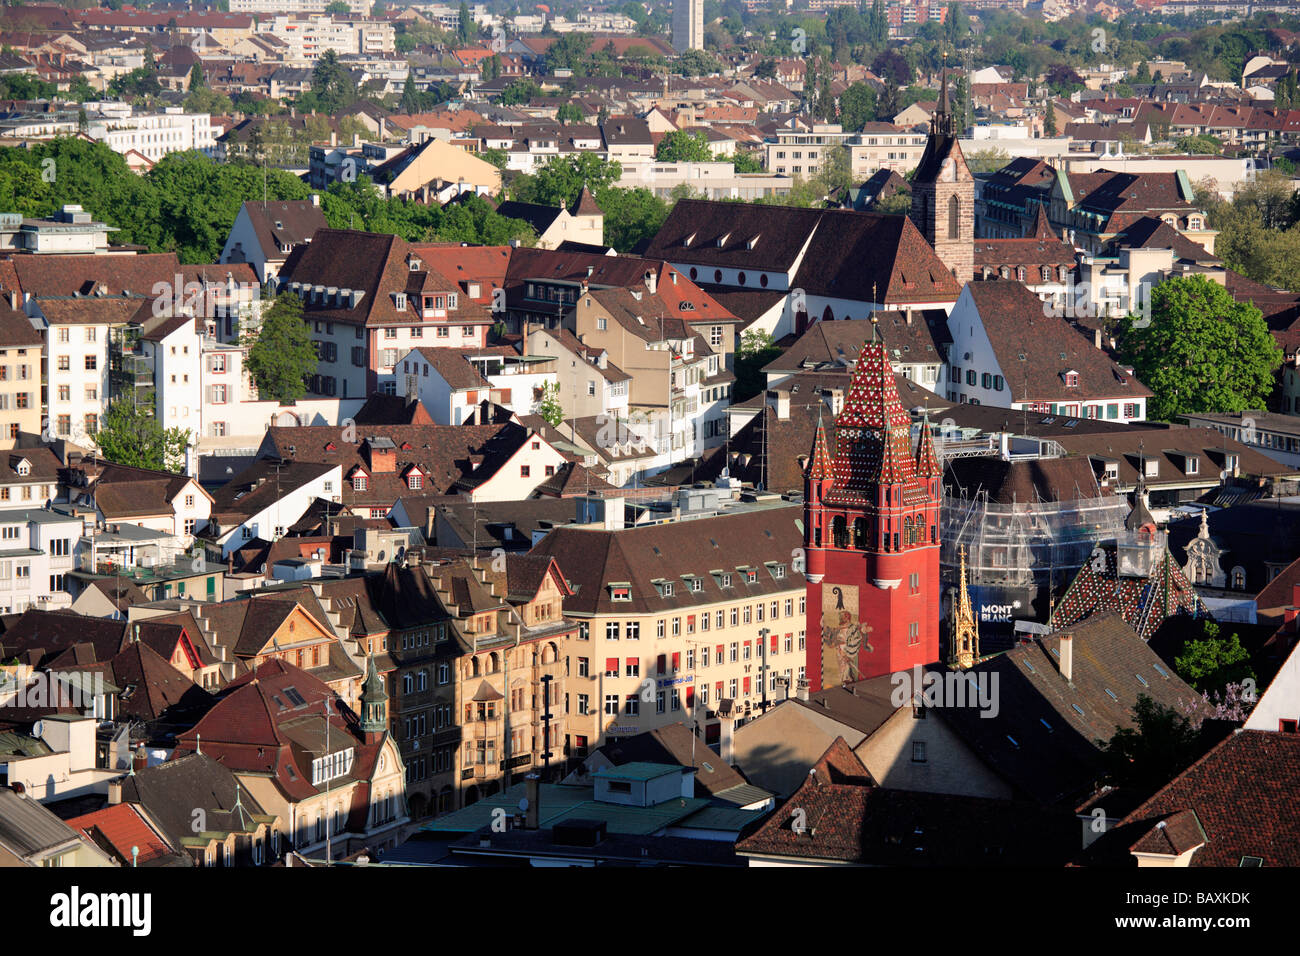 View of the city of Basel with Town Hall, Basel, Switzerland - Stock Image